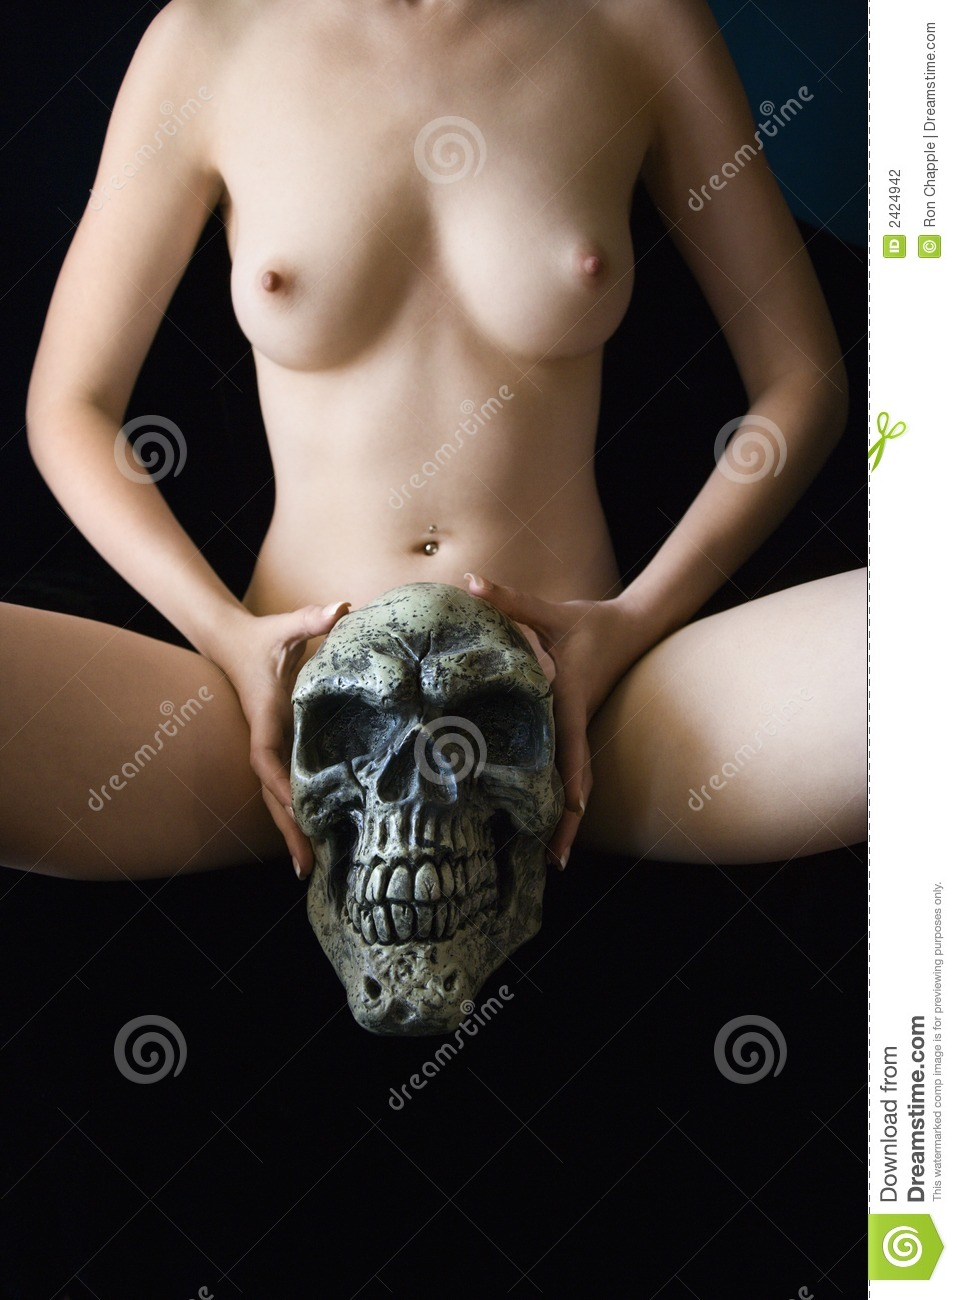 Nude Woman Holding Skull Stock Photo Image Of Body -5511